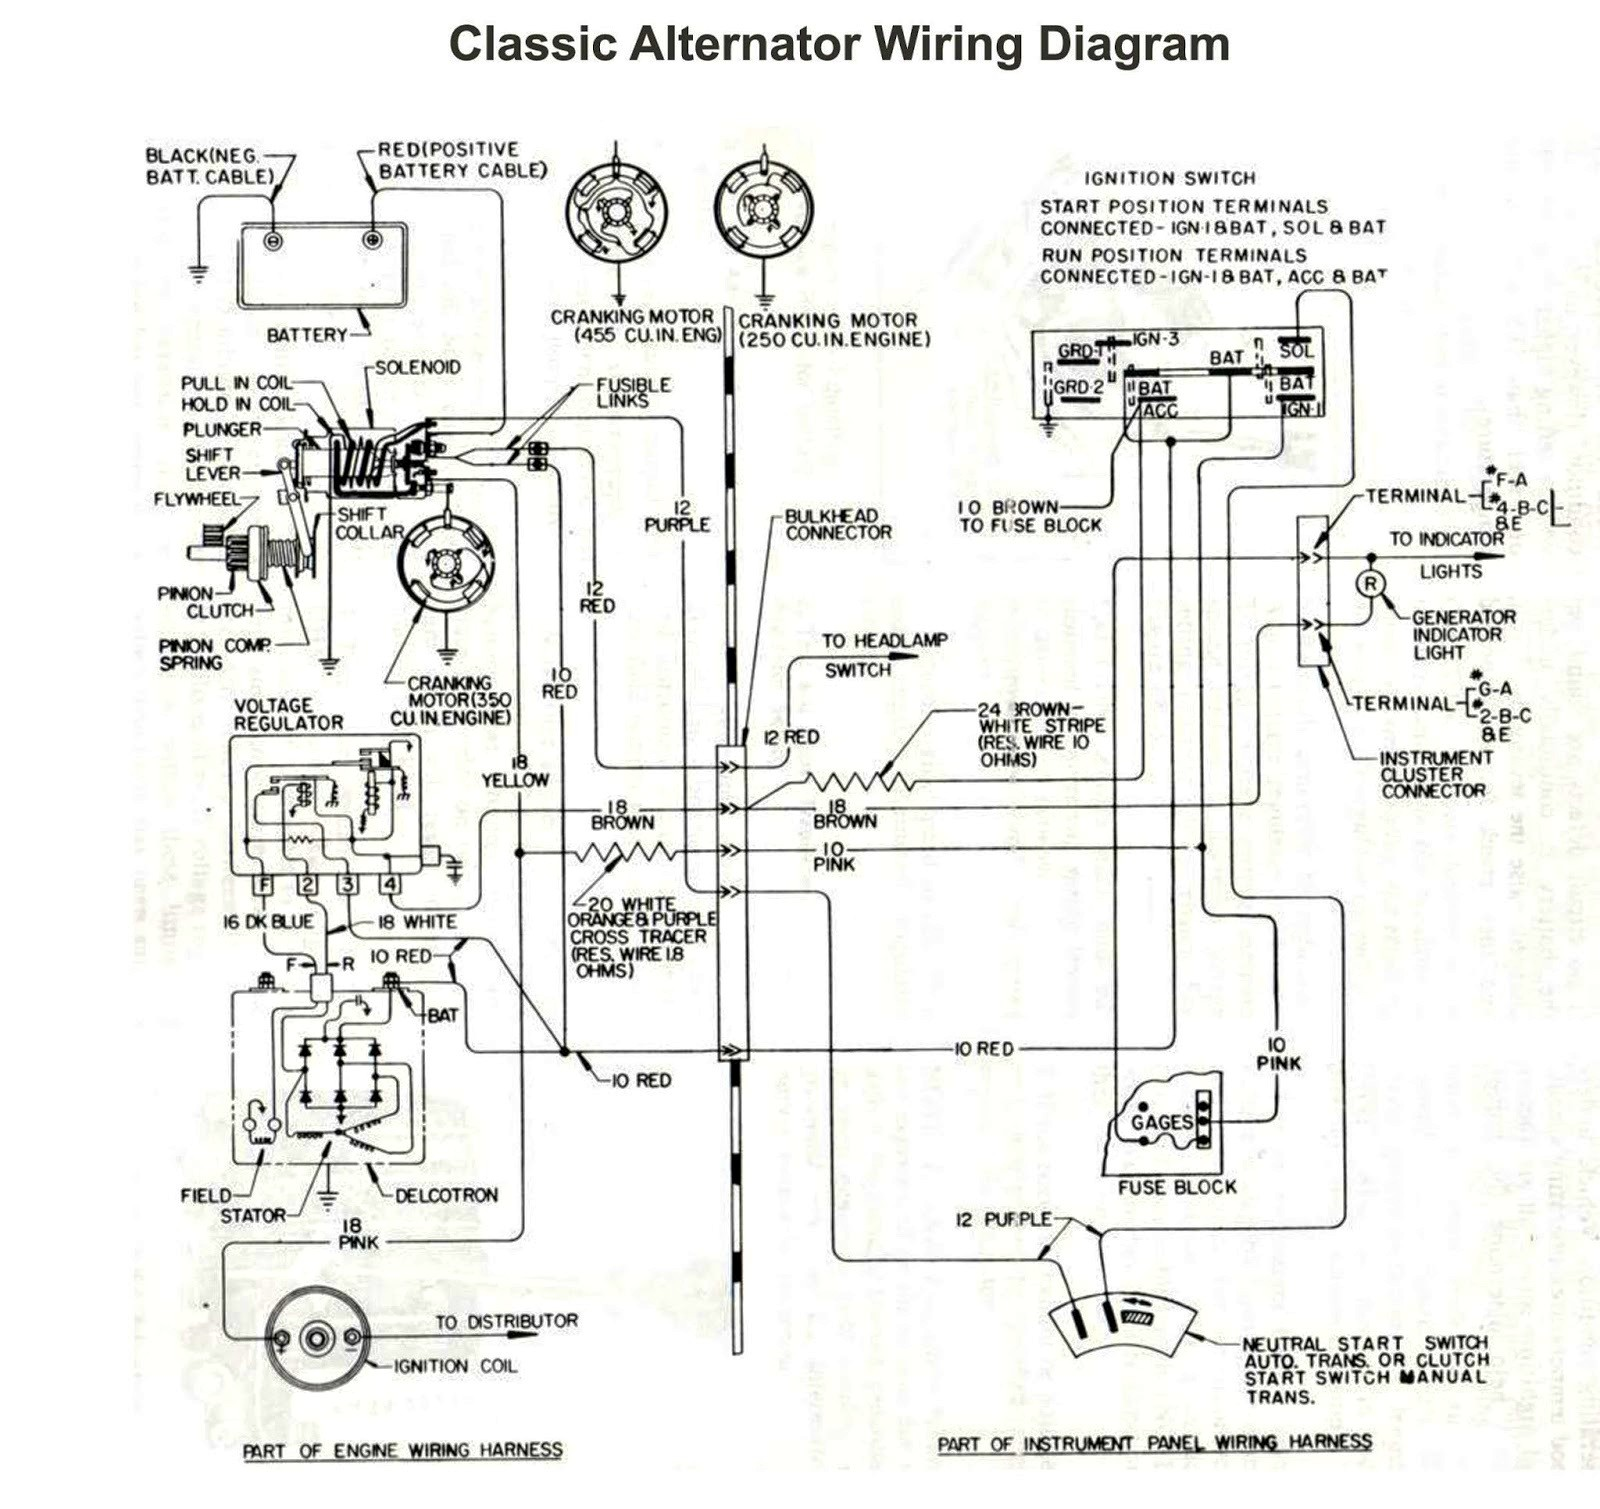 Wiring Diagram for Car Alternator Ponent Car Alternator Schematic ford Mustang July Electrical Of Wiring Diagram for Car Alternator